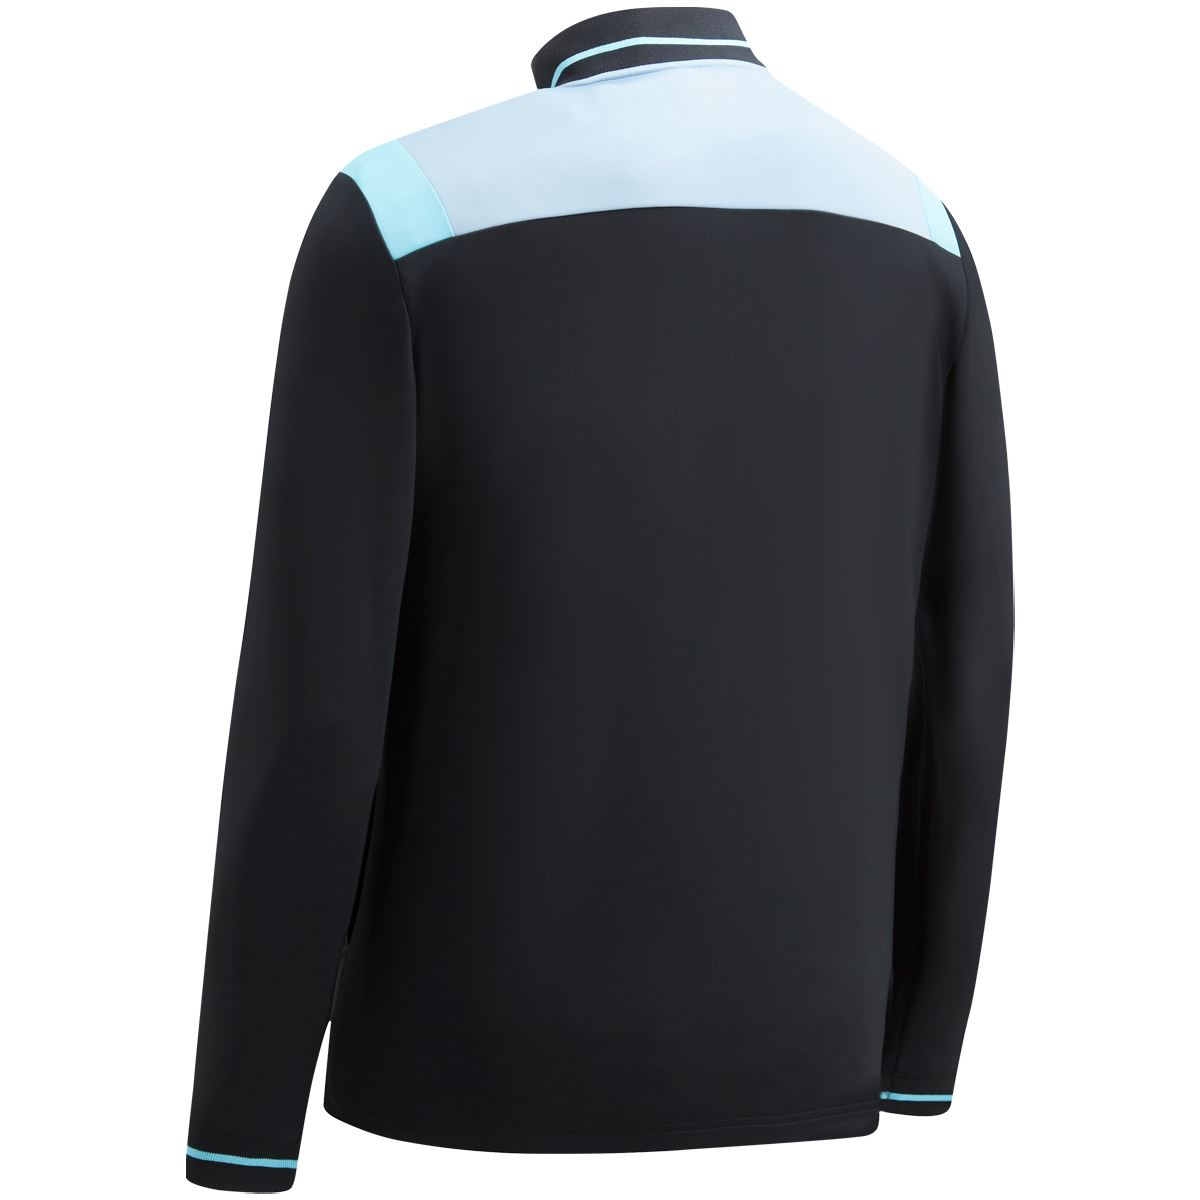 Callaway-Golf-2019-Mens-Colourblock-Track-FZ-Contrast-Opti-Dri-Golf-Jacket thumbnail 3